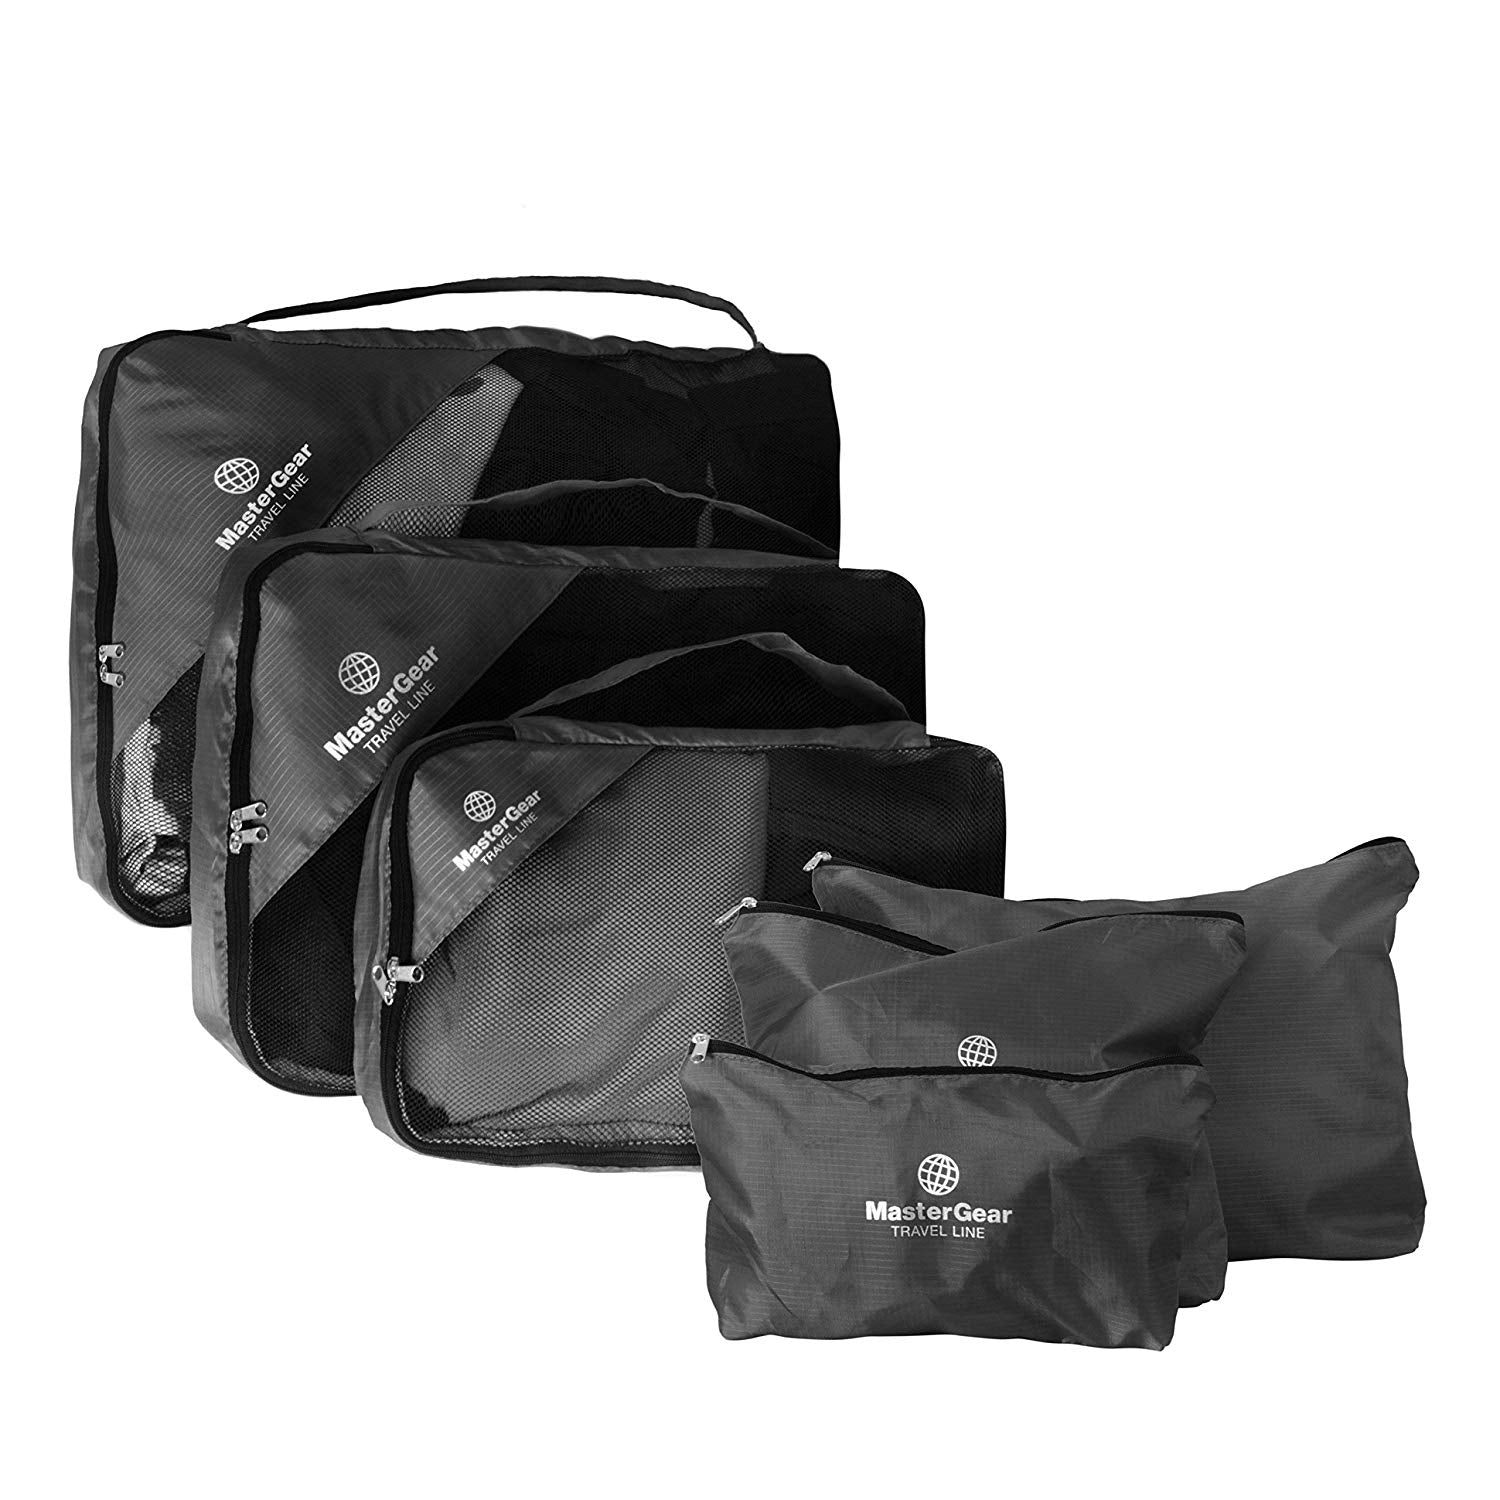 MasterGear Travel Bags – Suitcase Organisers – Set of 6, Including Toiletry Bag, Makeup Organiser – Packing Cubes